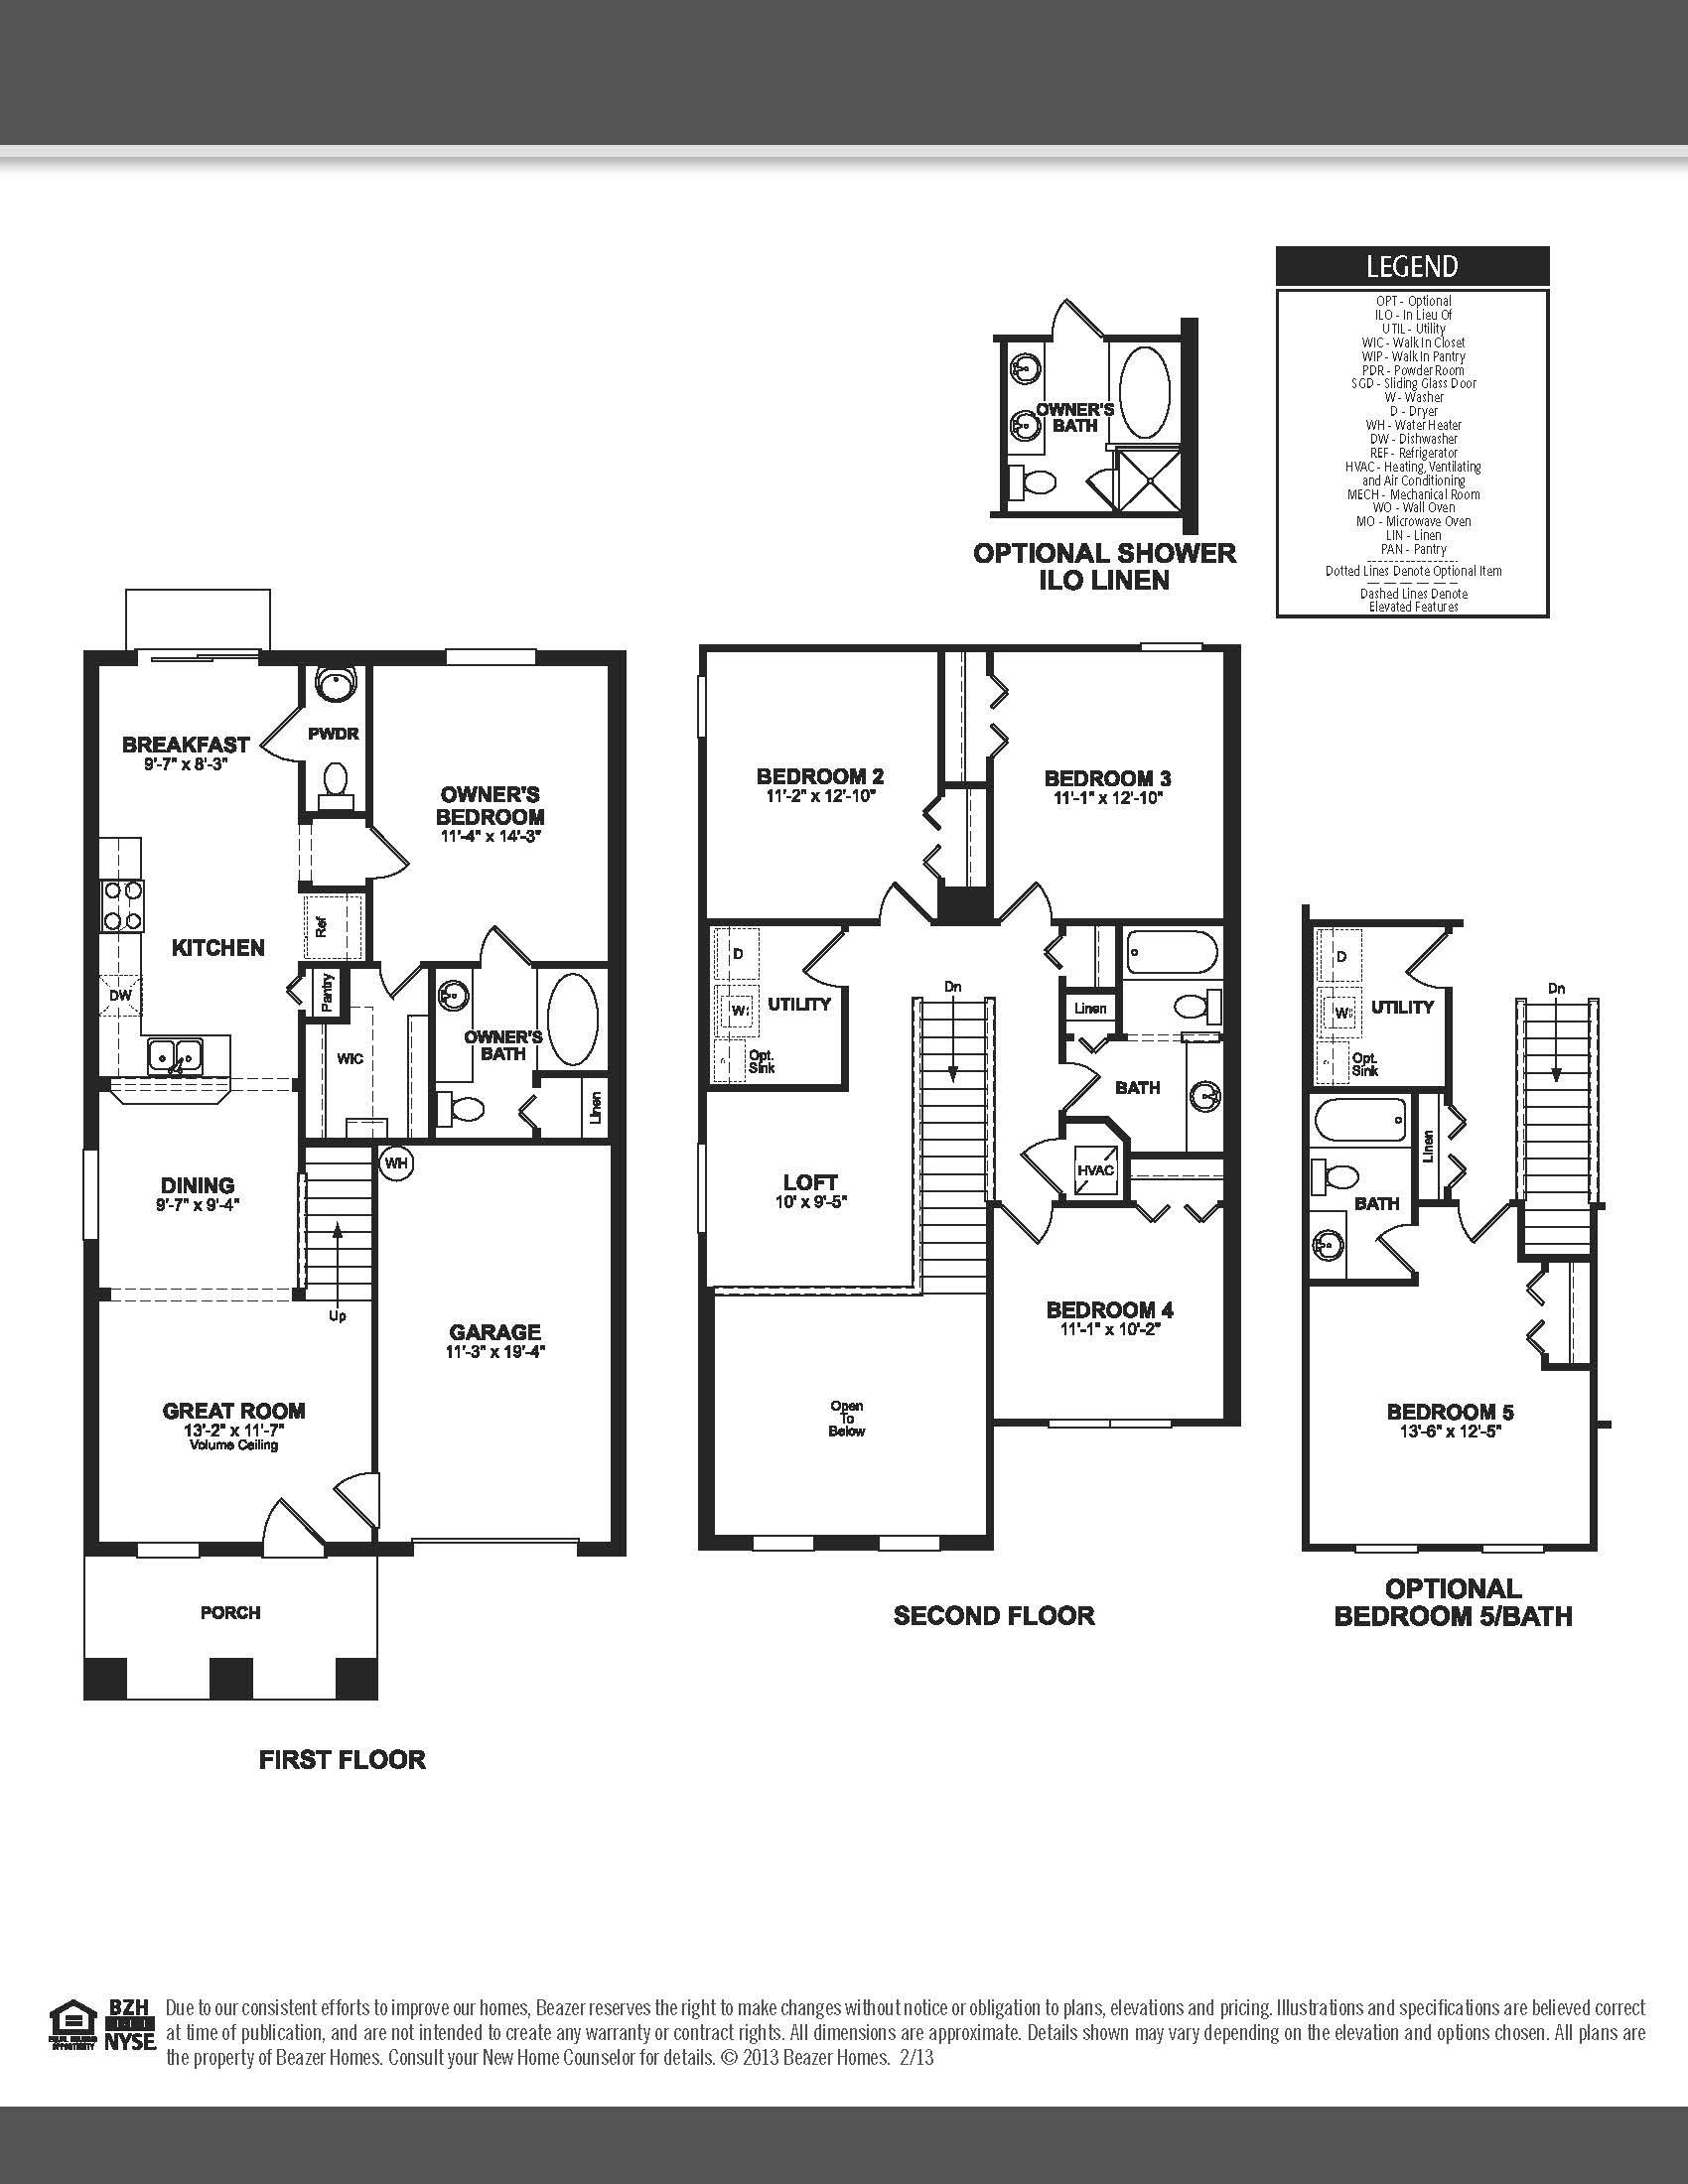 kingston townhouse floor plans pinterest kingston townhouse